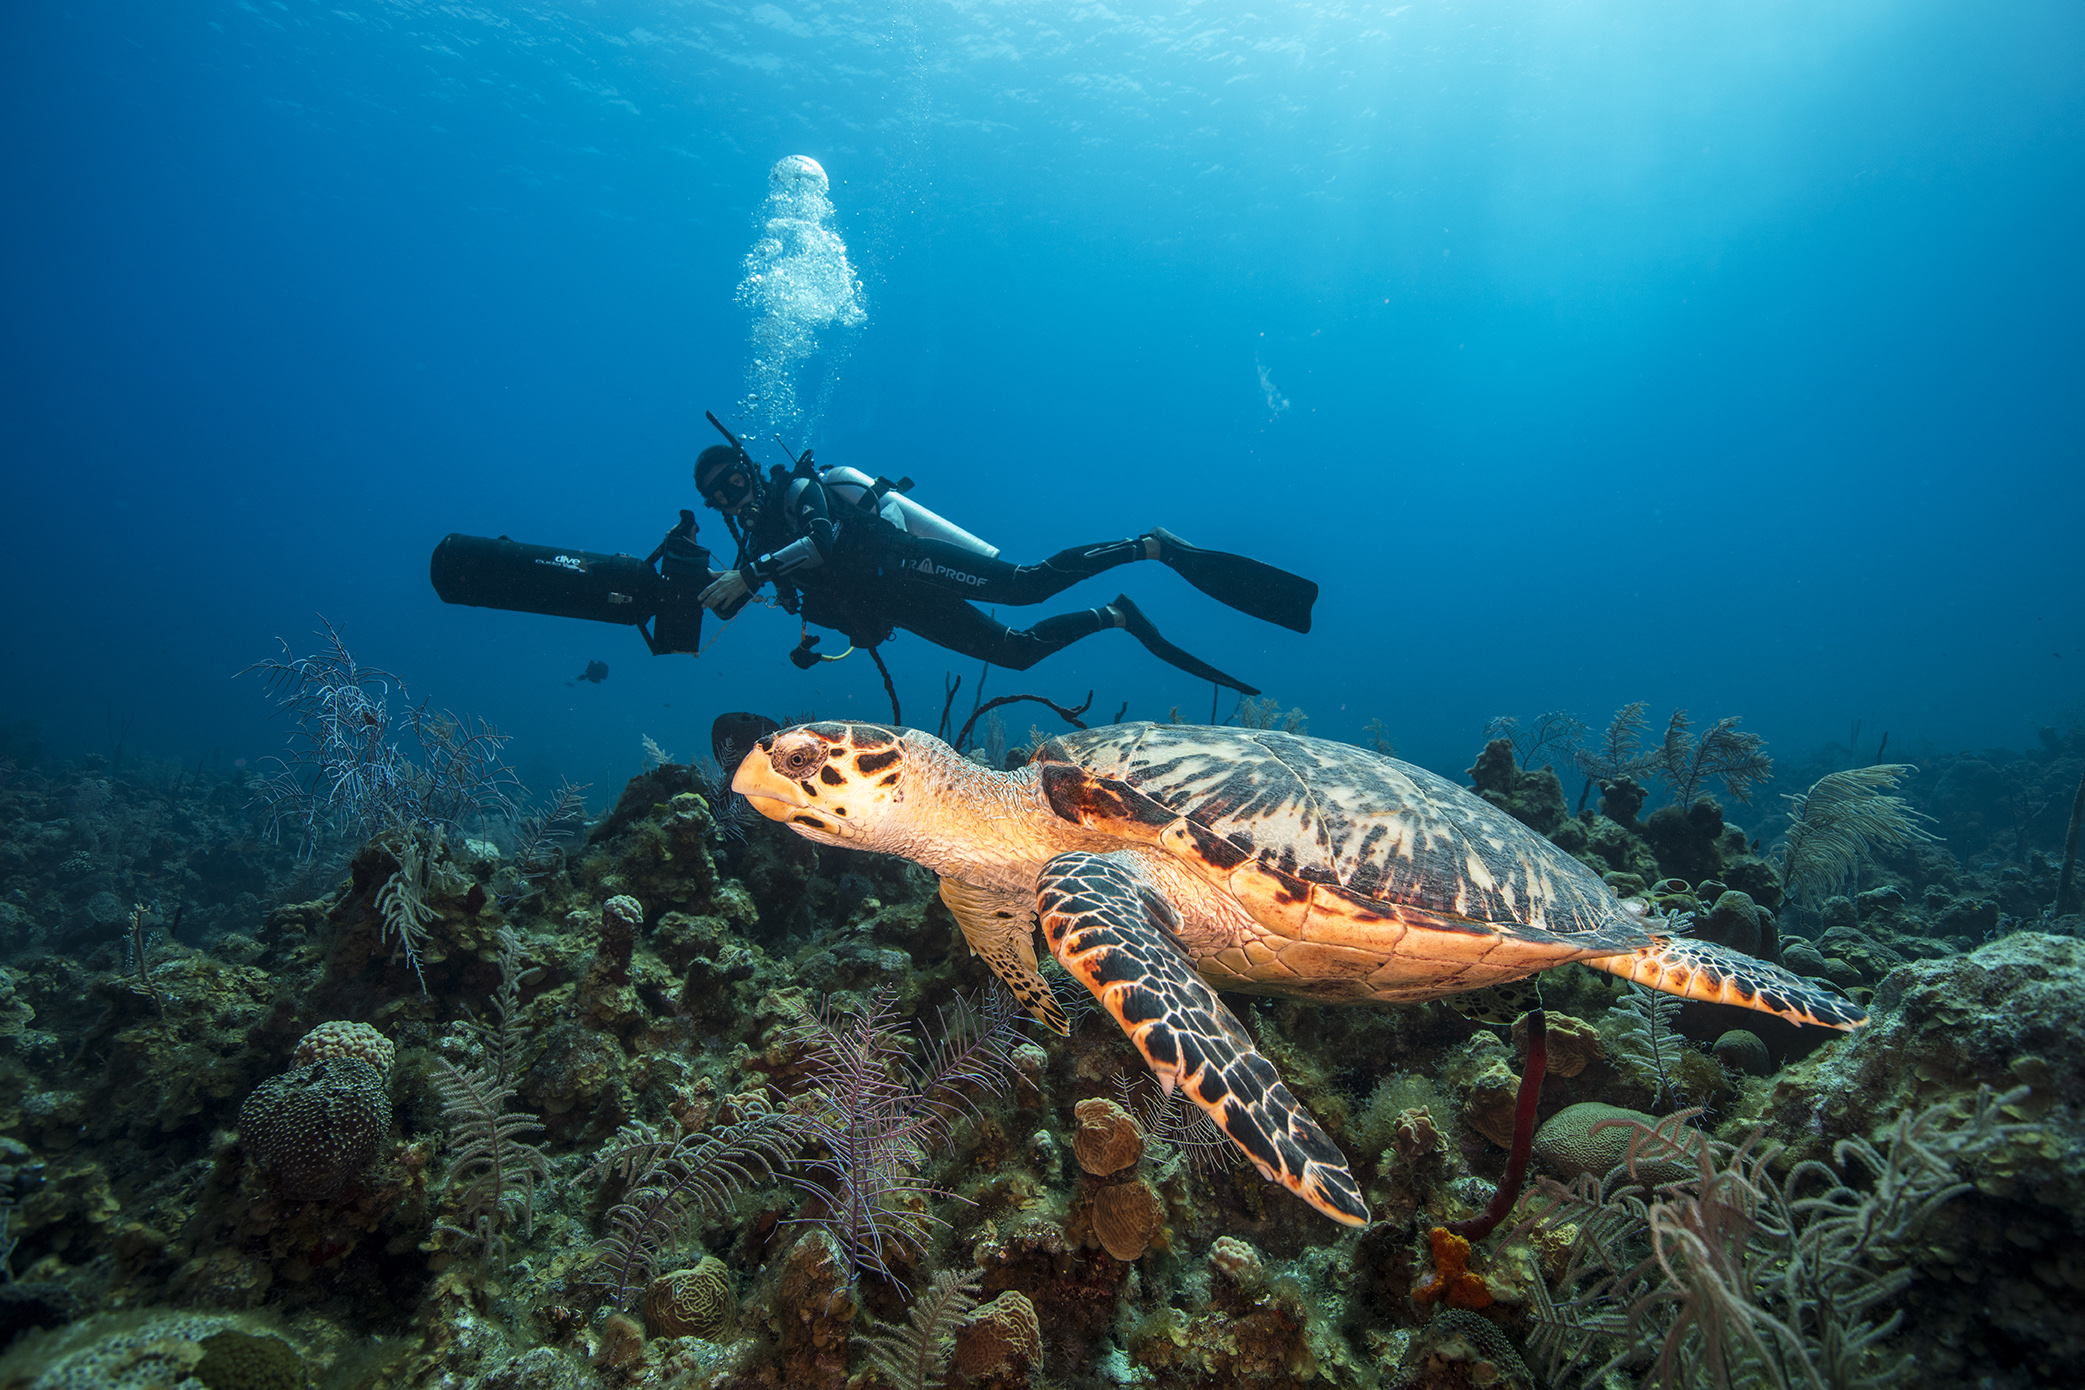 Respectfully diving with turtles